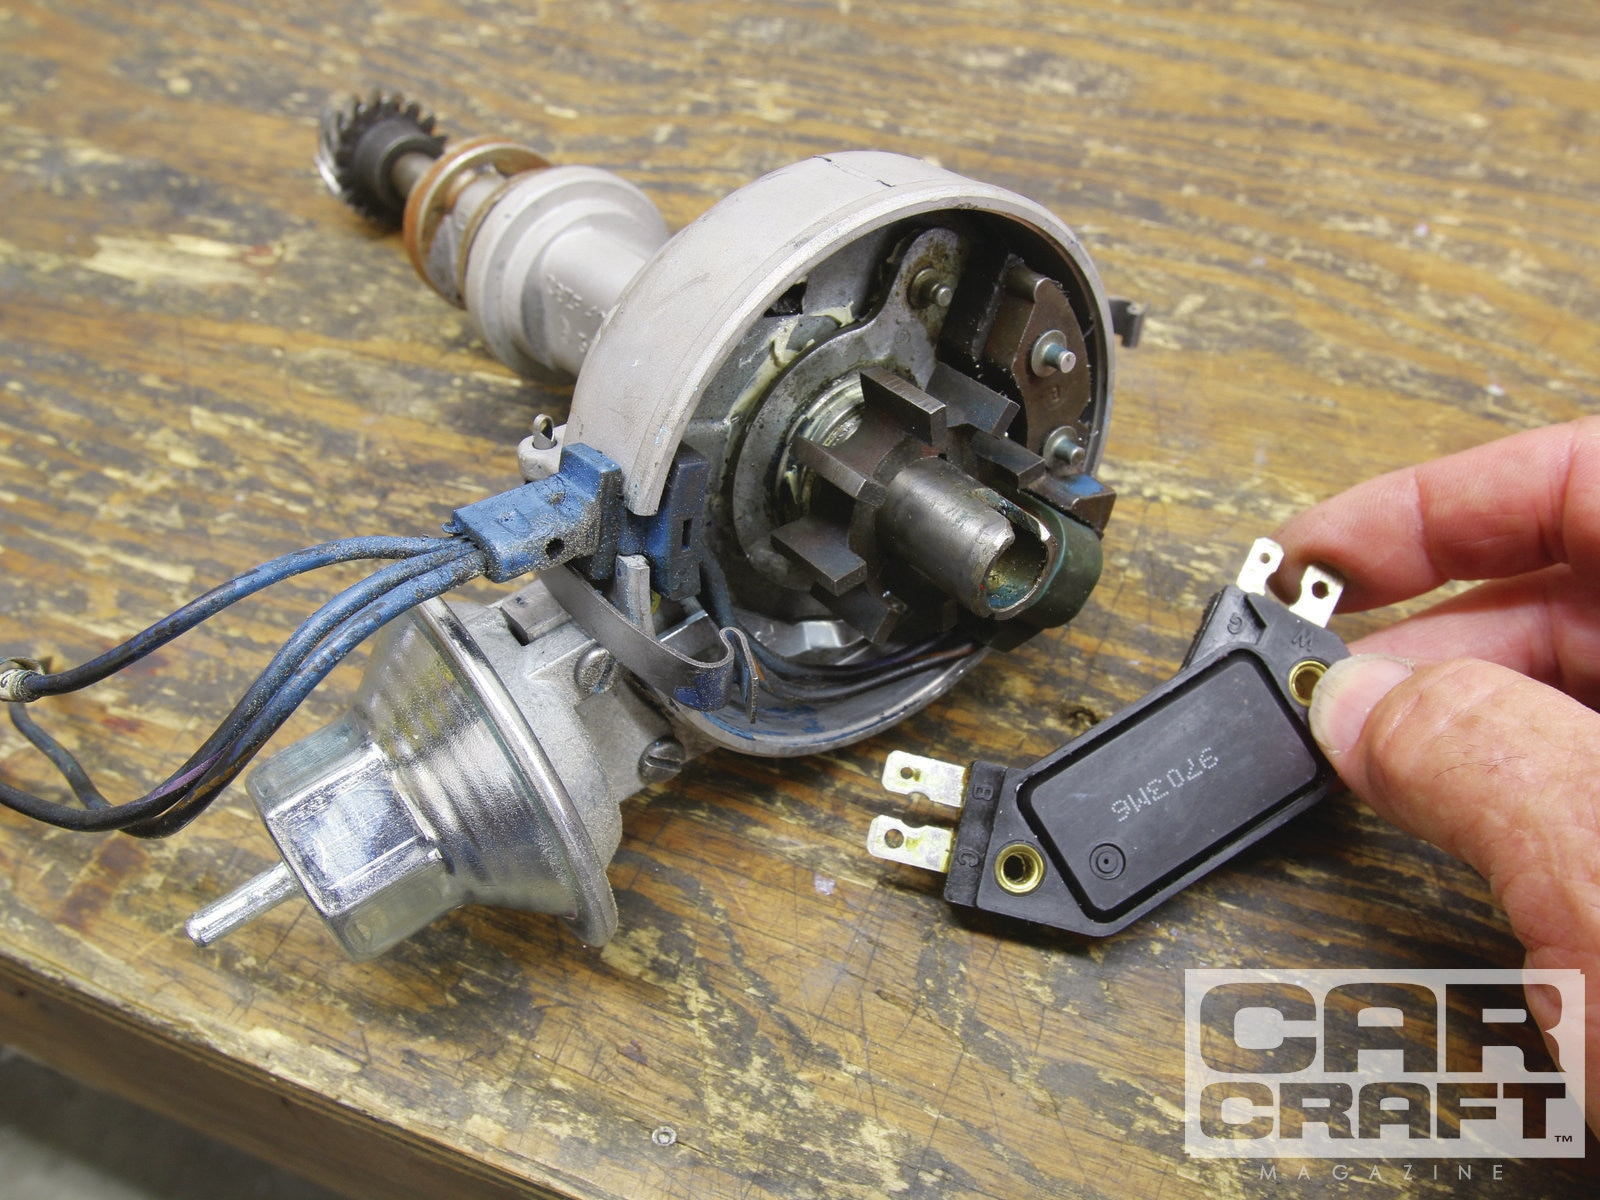 hight resolution of how to convert a ford or chrysler ignition to gm hei car craft hei conversion wiring diagram ford 351w hei distributor cap wiring diagram